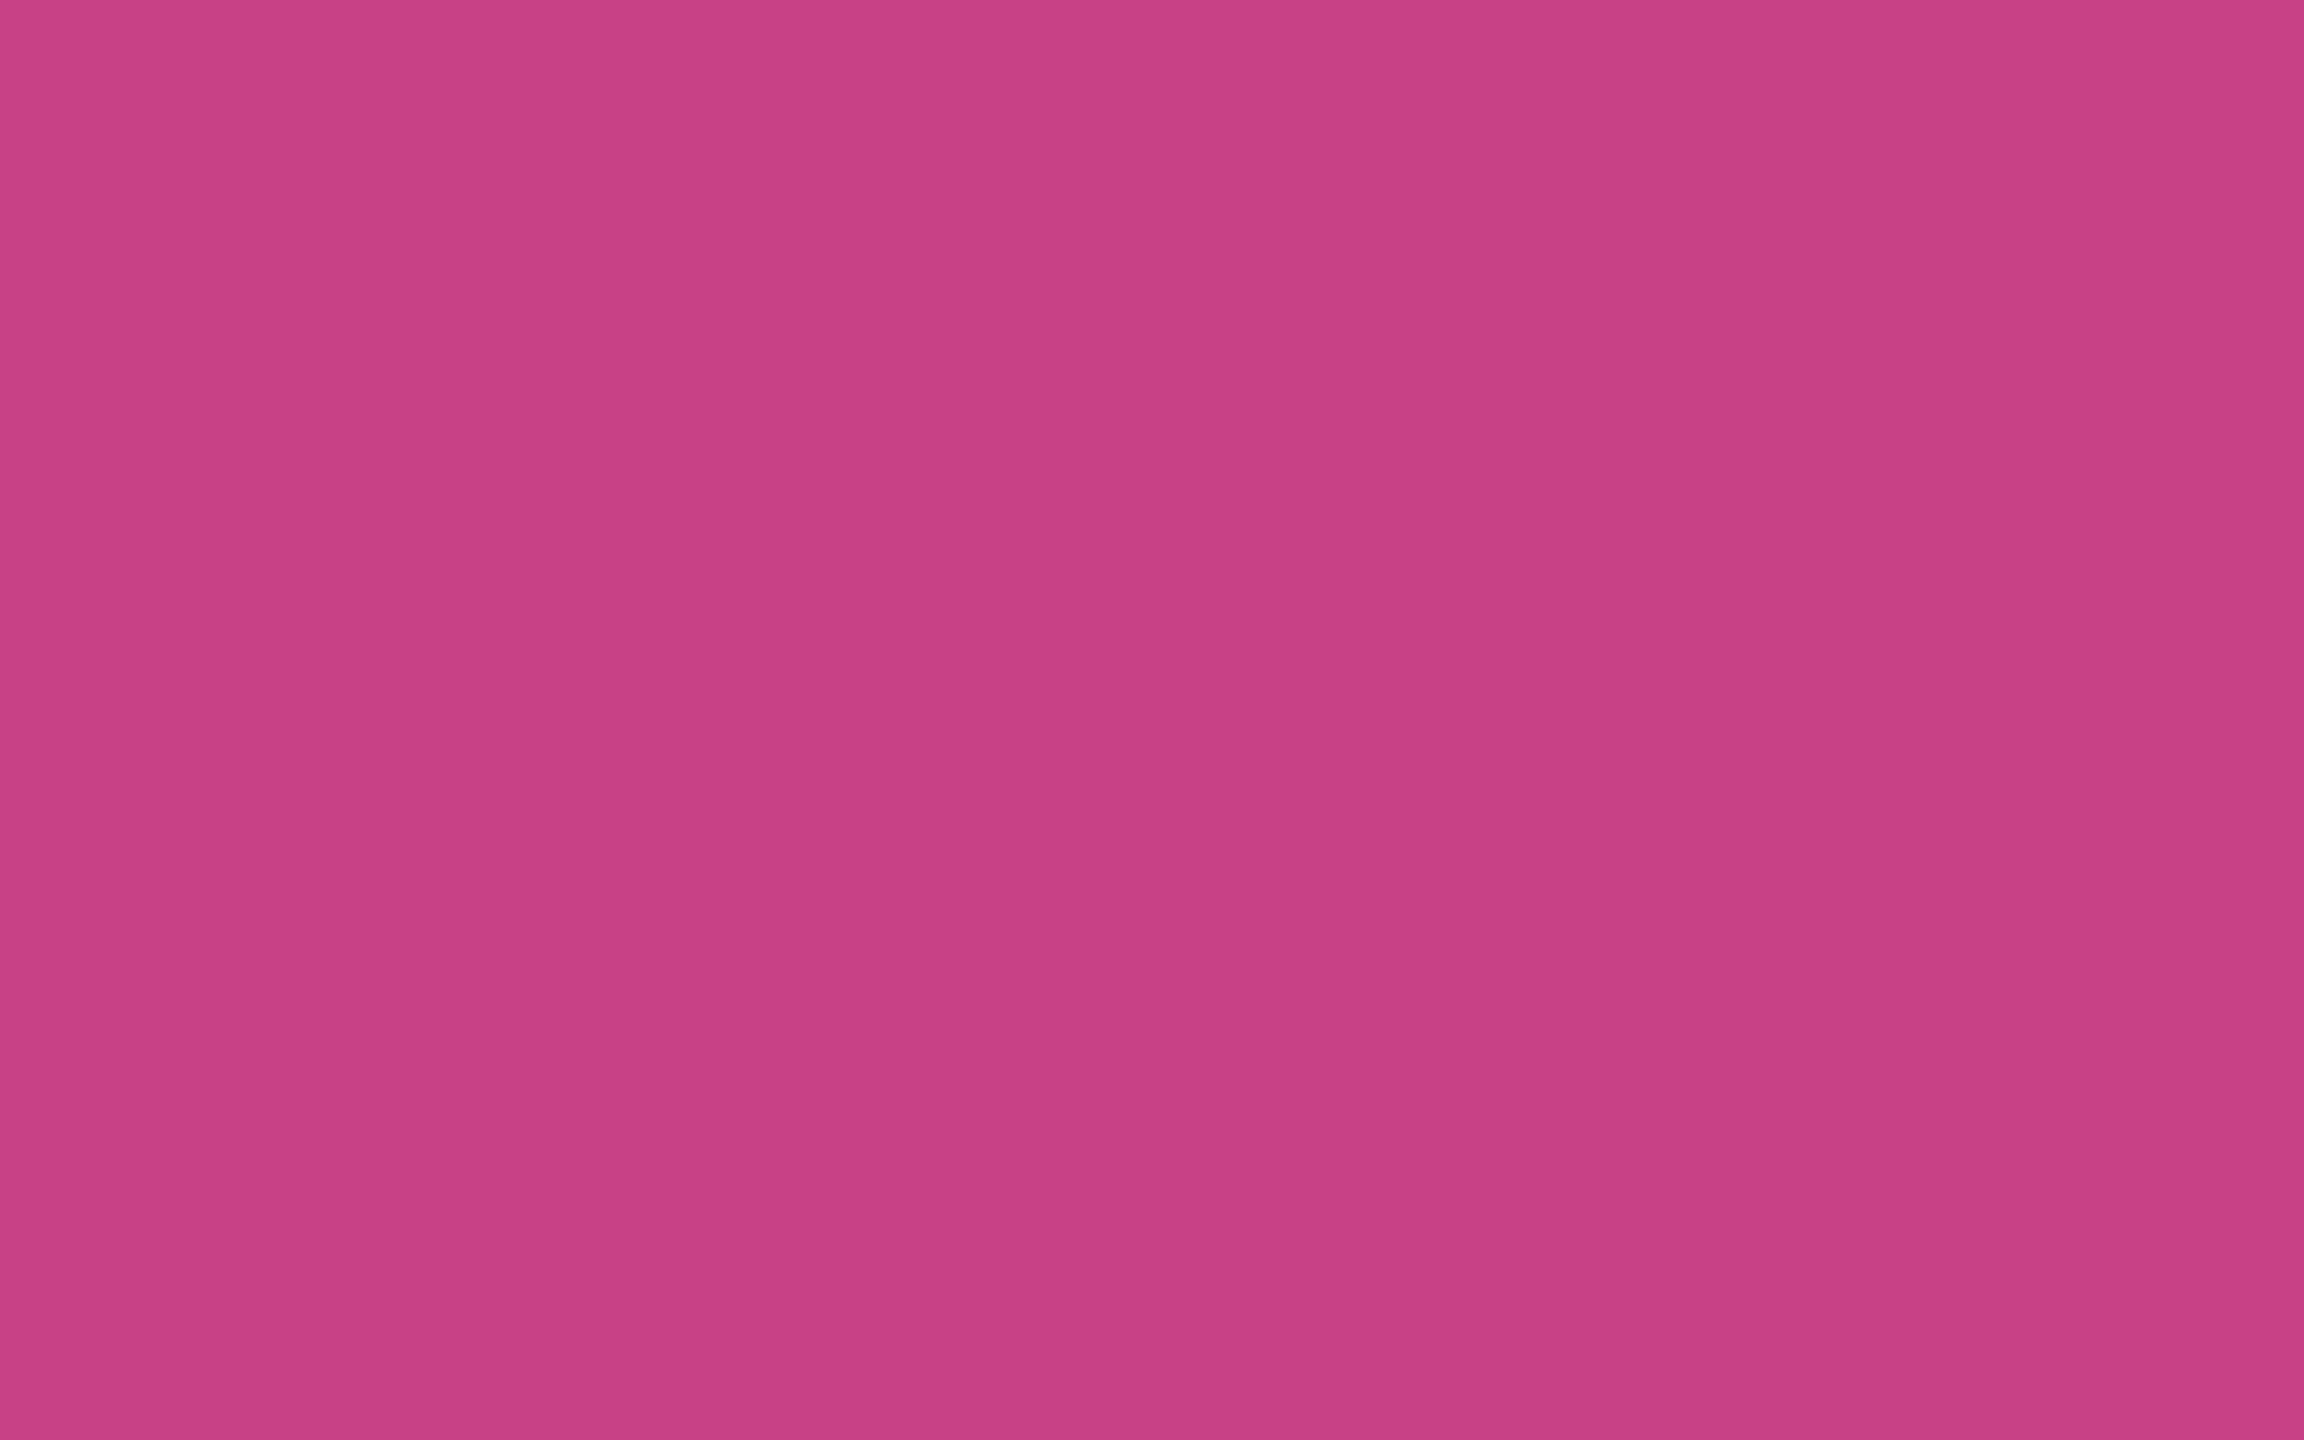 2304x1440 Smitten Solid Color Background